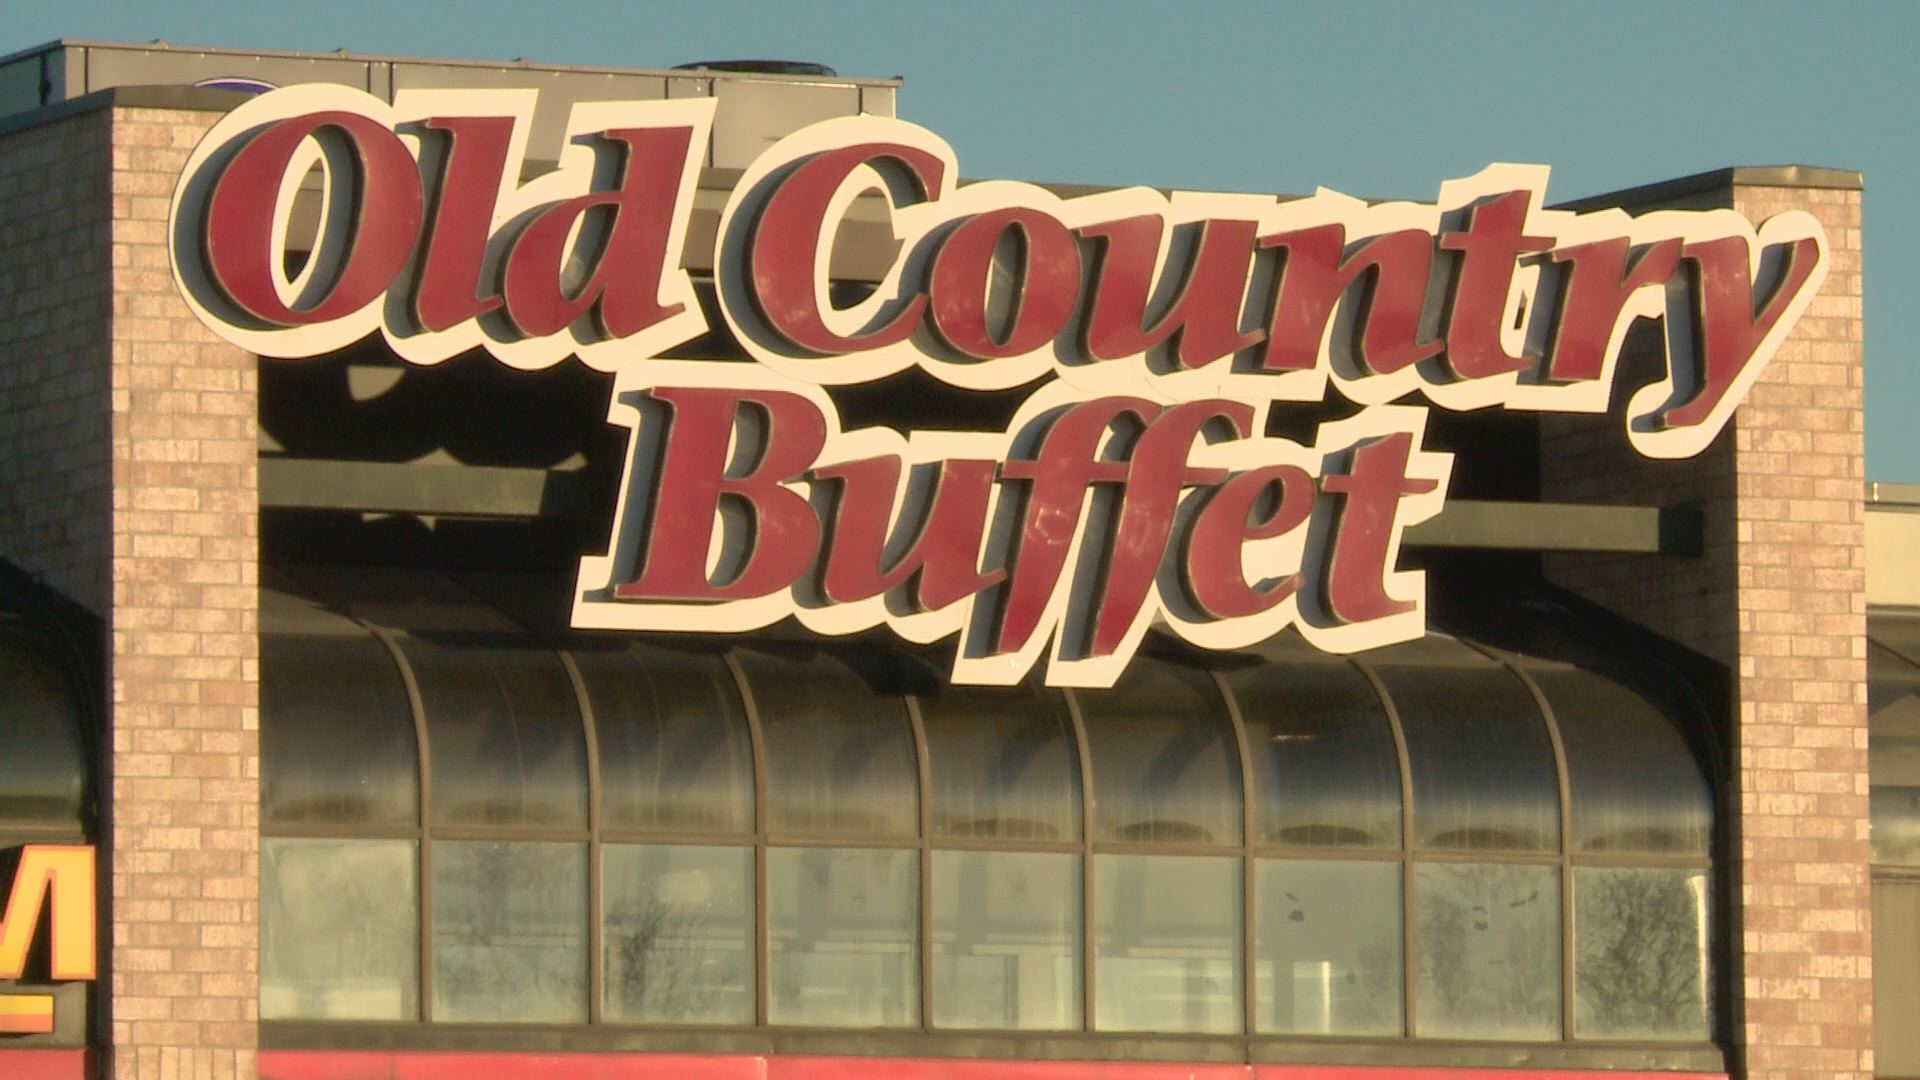 The only Old Country Buffet location still operating in Minnesota is in Burnsville, and McDevitt expressed an interest if it becomes available.